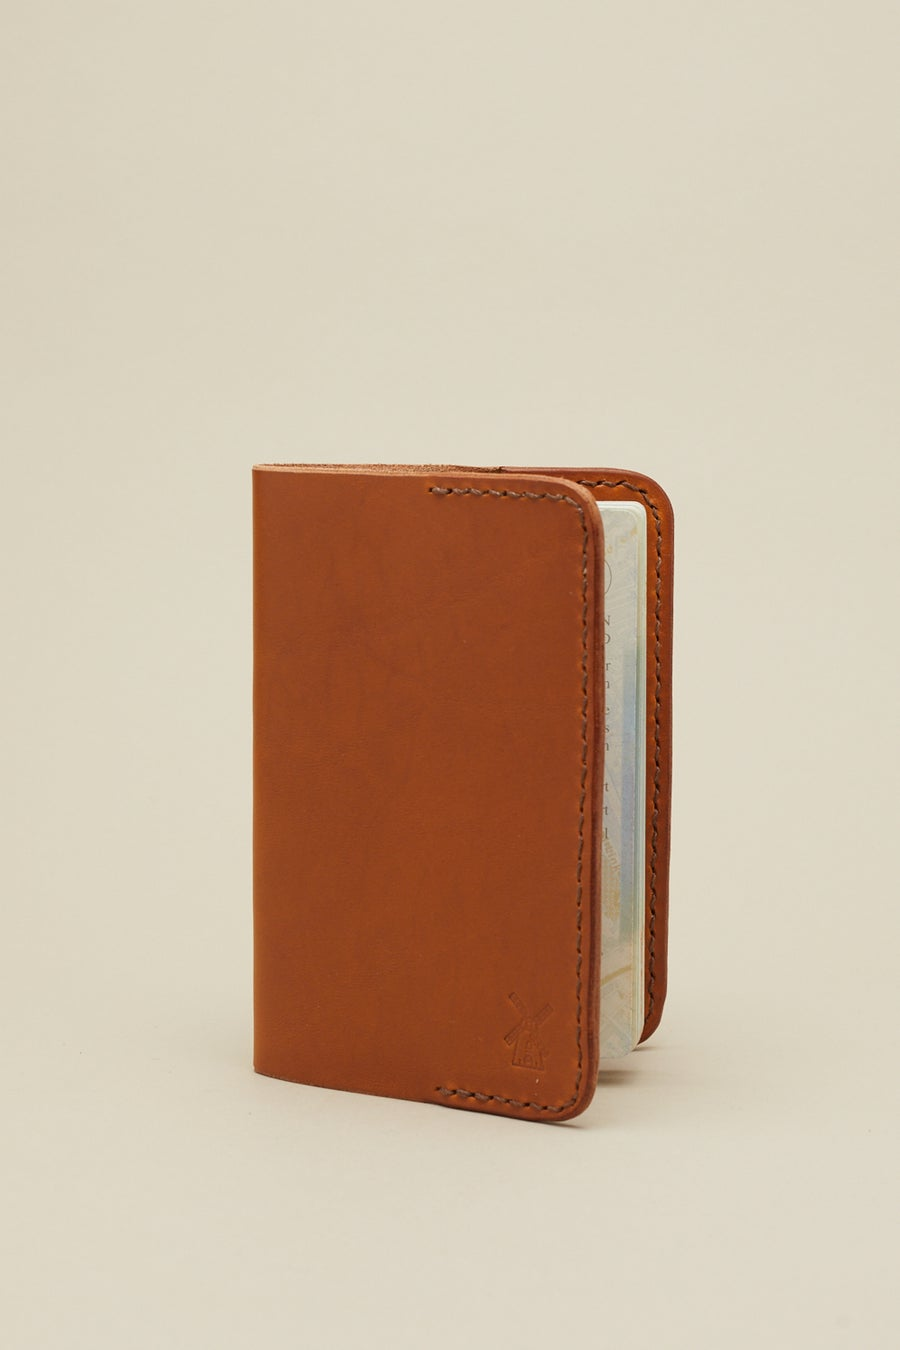 Image of Passport Case in Tan